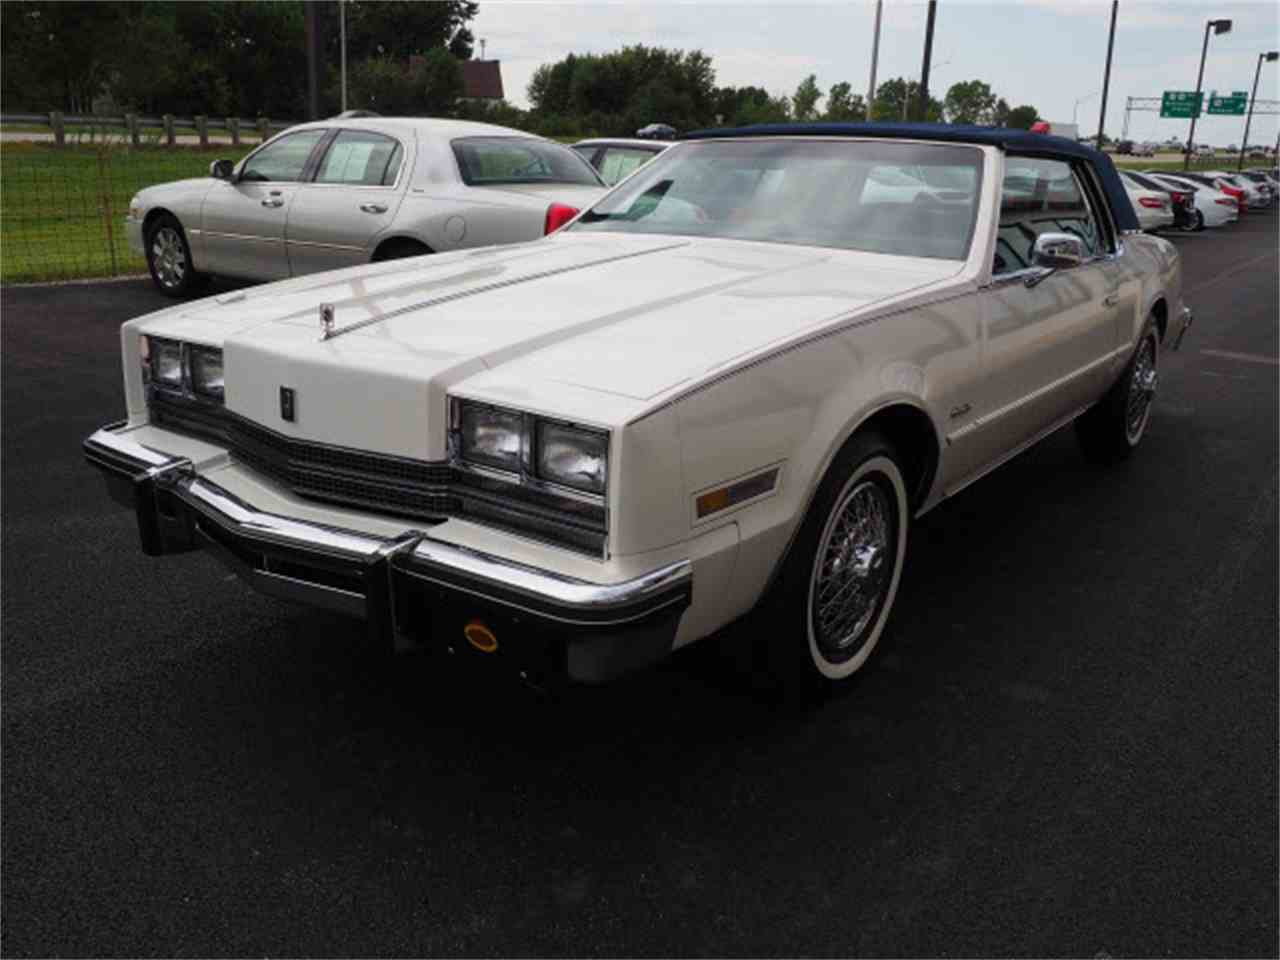 Large Picture of '85 Oldsmobile Toronado located in Ohio - $15,999.00 Offered by Nelson Automotive, Ltd. - LUQO